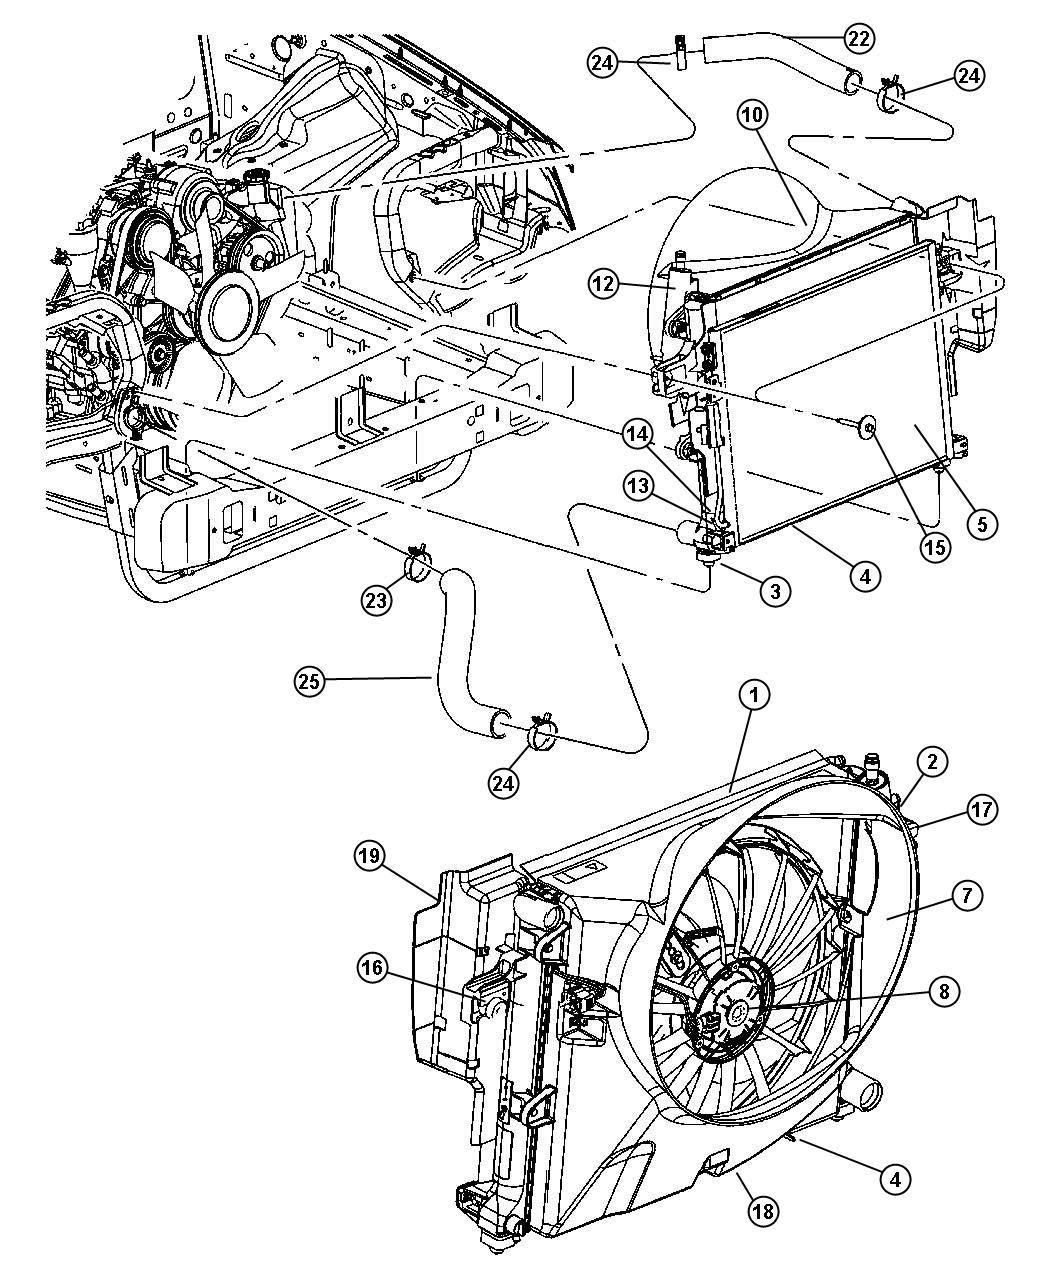 Jeep Grand Cherokee Label. Belt routing. [engine cooling